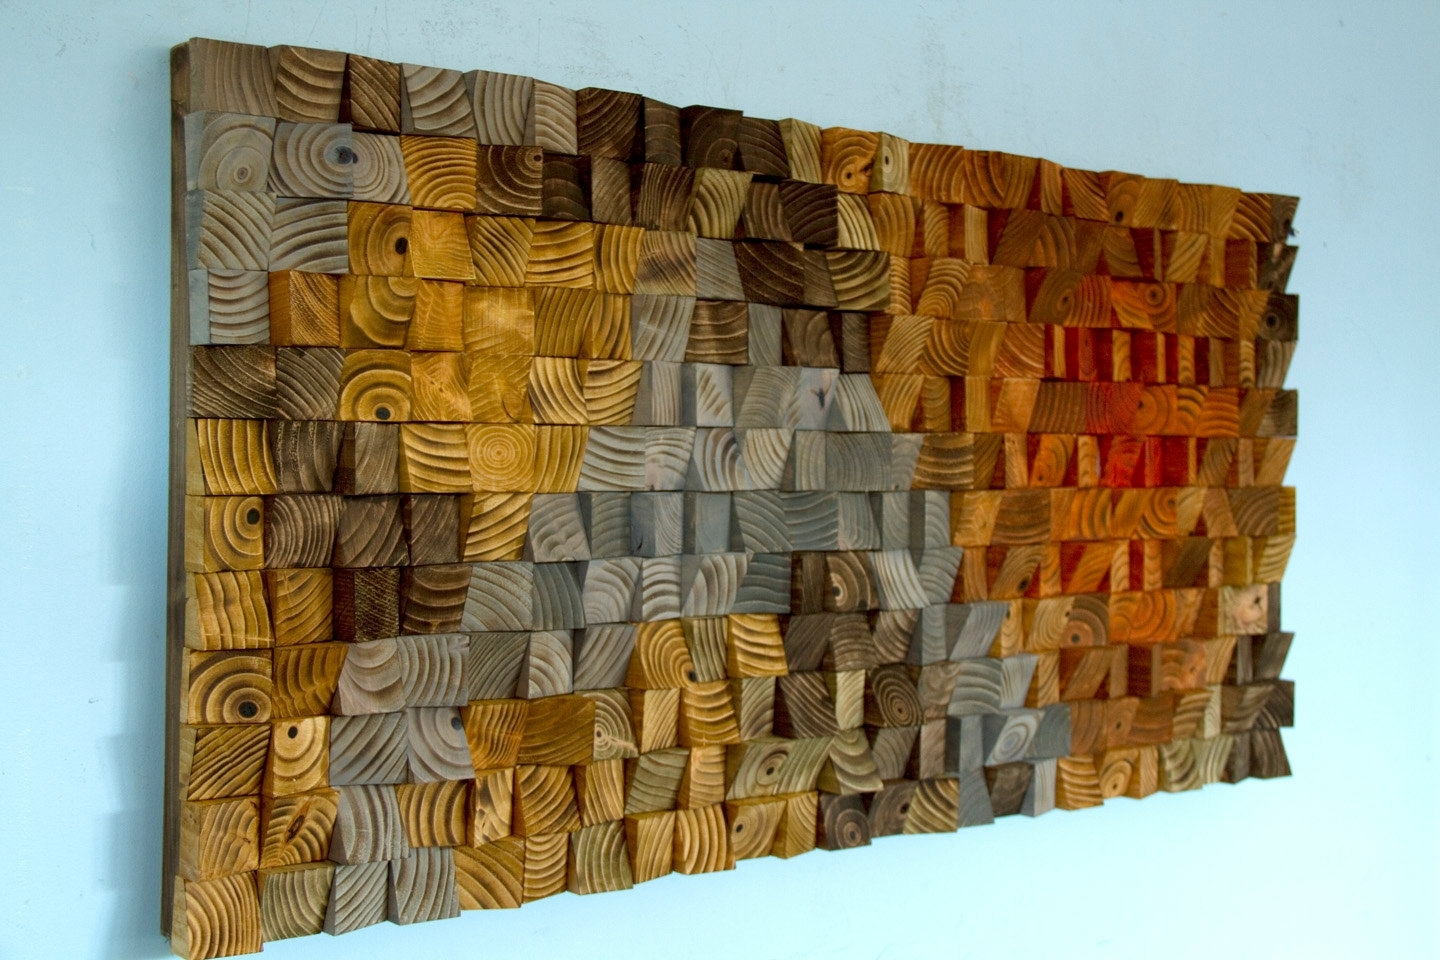 Well Known Rustic Wood Wall Art, Wood Wall Sculpture, Abstract Wood Art – Art Pertaining To Wood Wall Art (View 6 of 15)